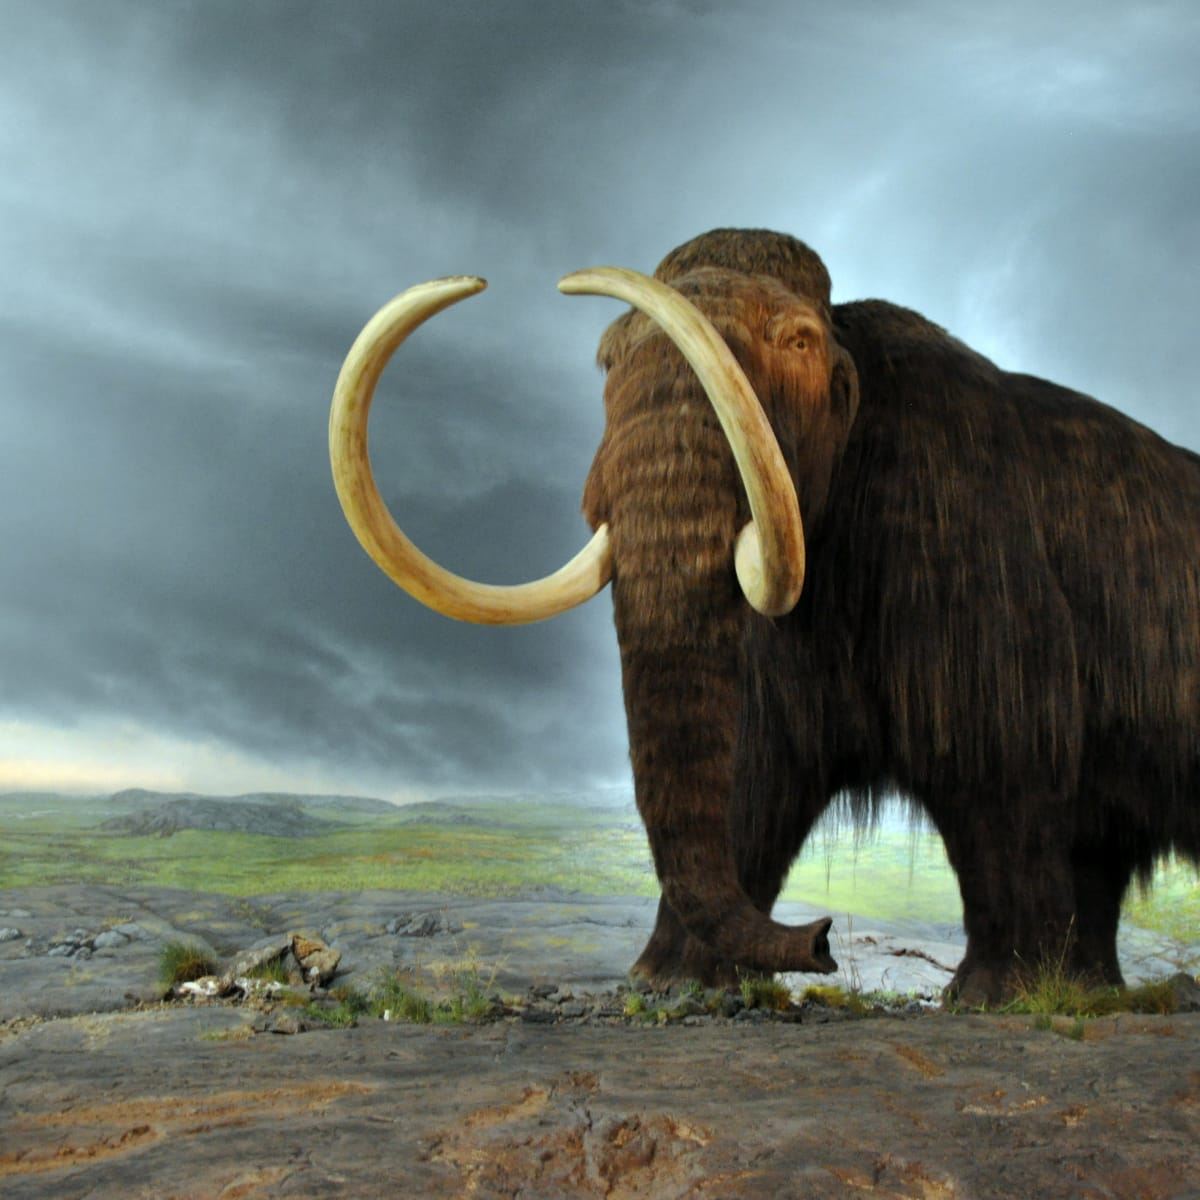 hith-woolly_mammoth-2.jpg